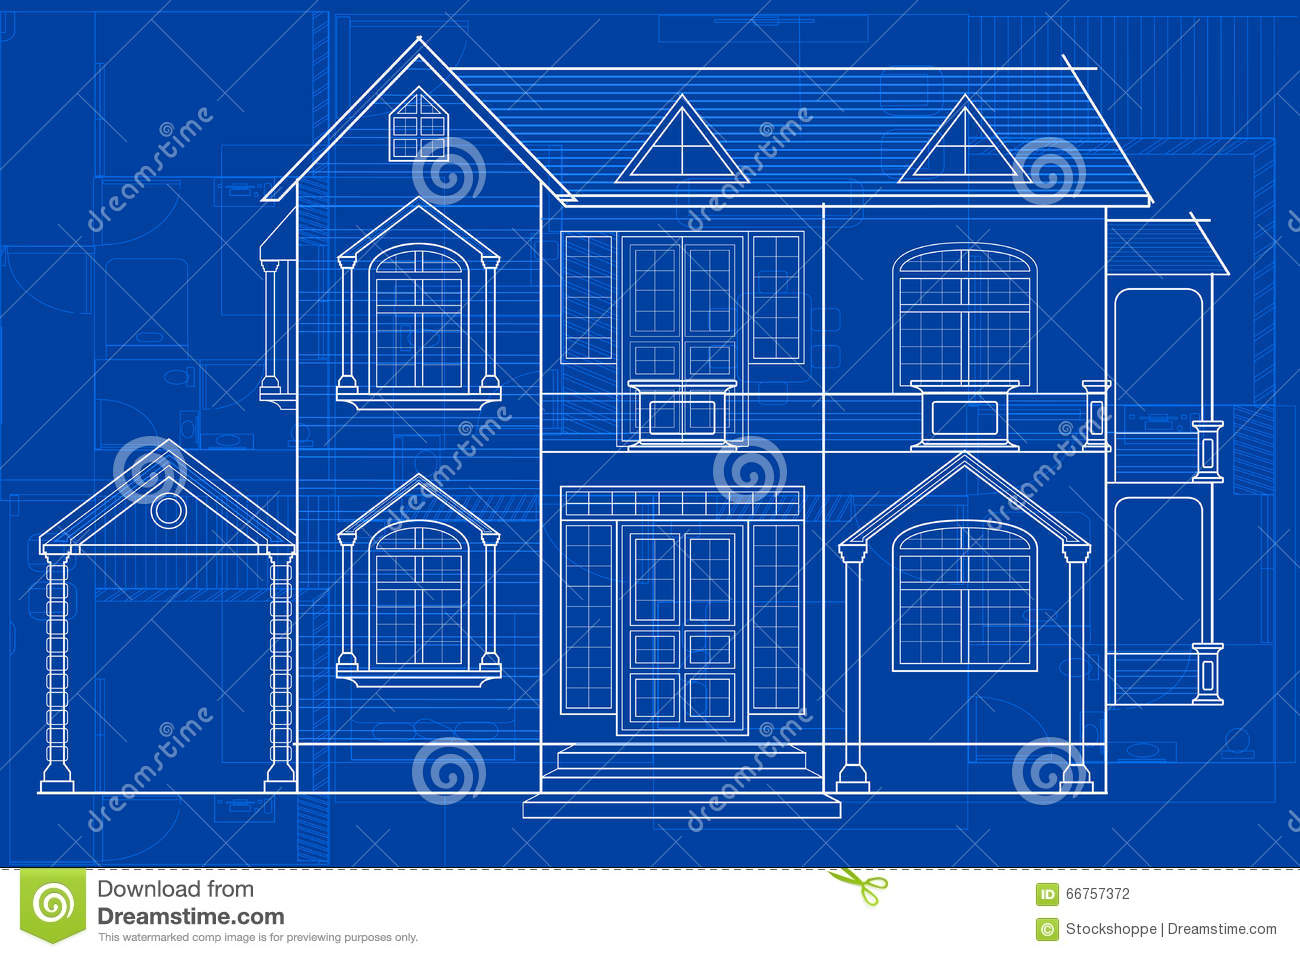 Blueprint of building stock vector illustration of construction blueprint of building construction digital malvernweather Choice Image